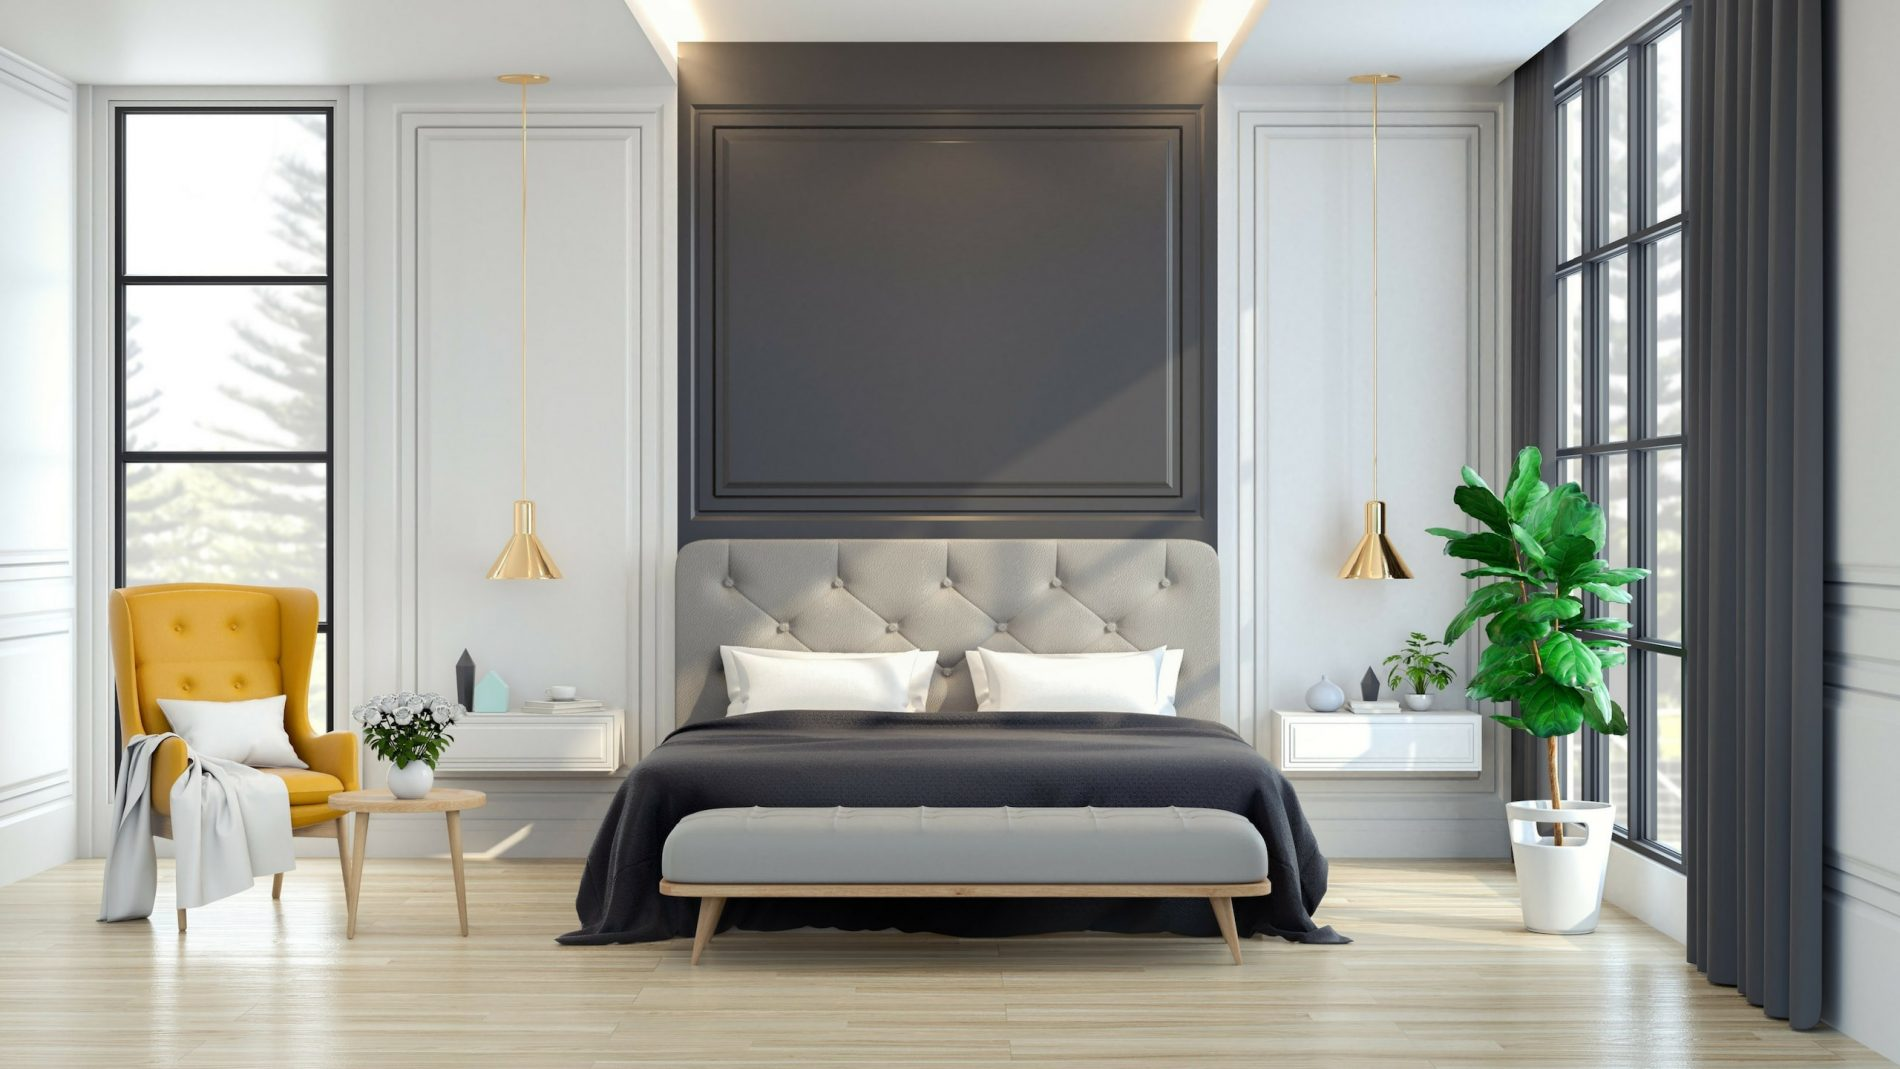 Why are fabric beds so popular?